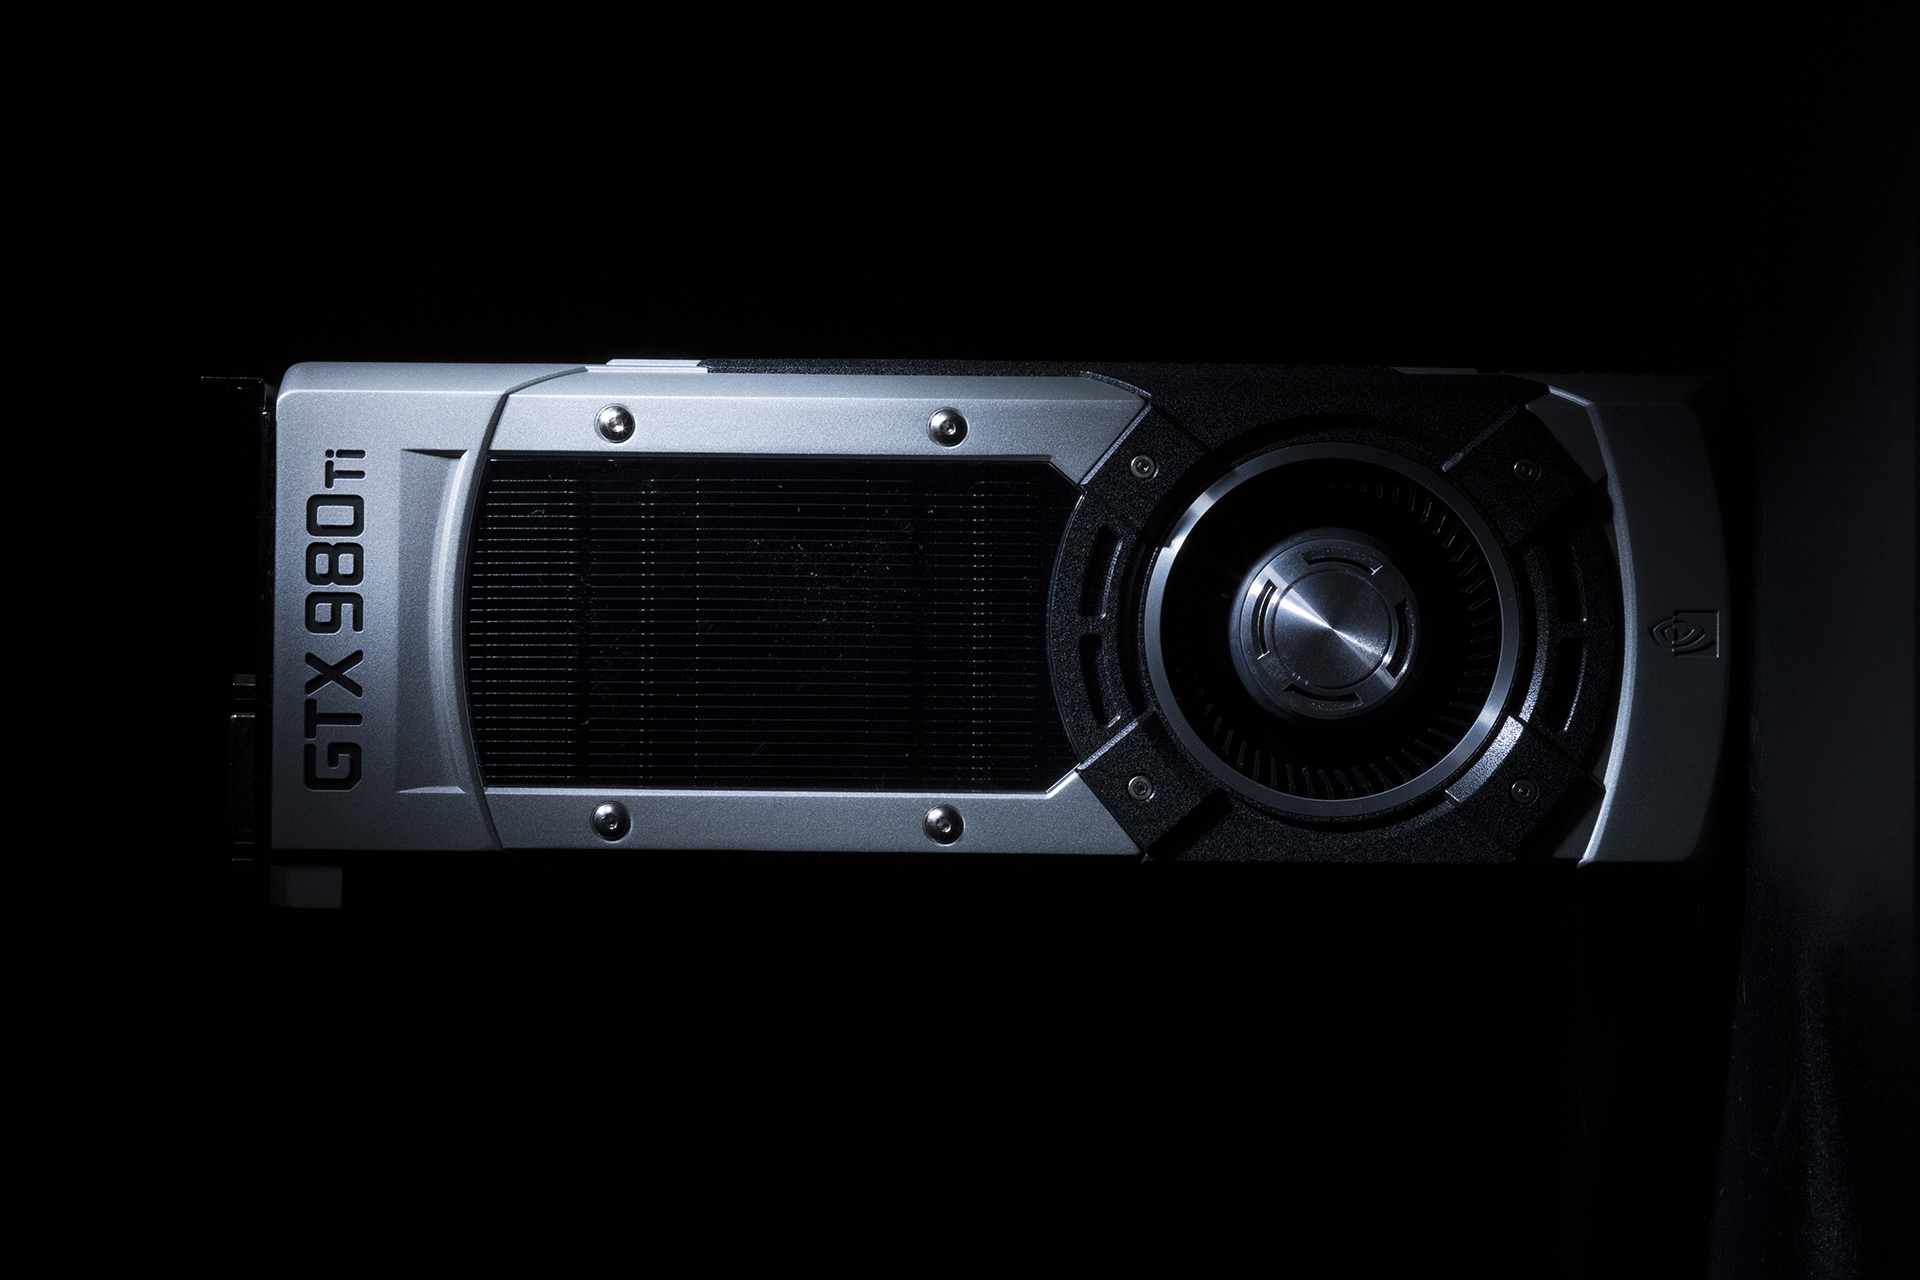 nvidia-geforce-gtx-980-ti-key-visual-2-rotated-1920px